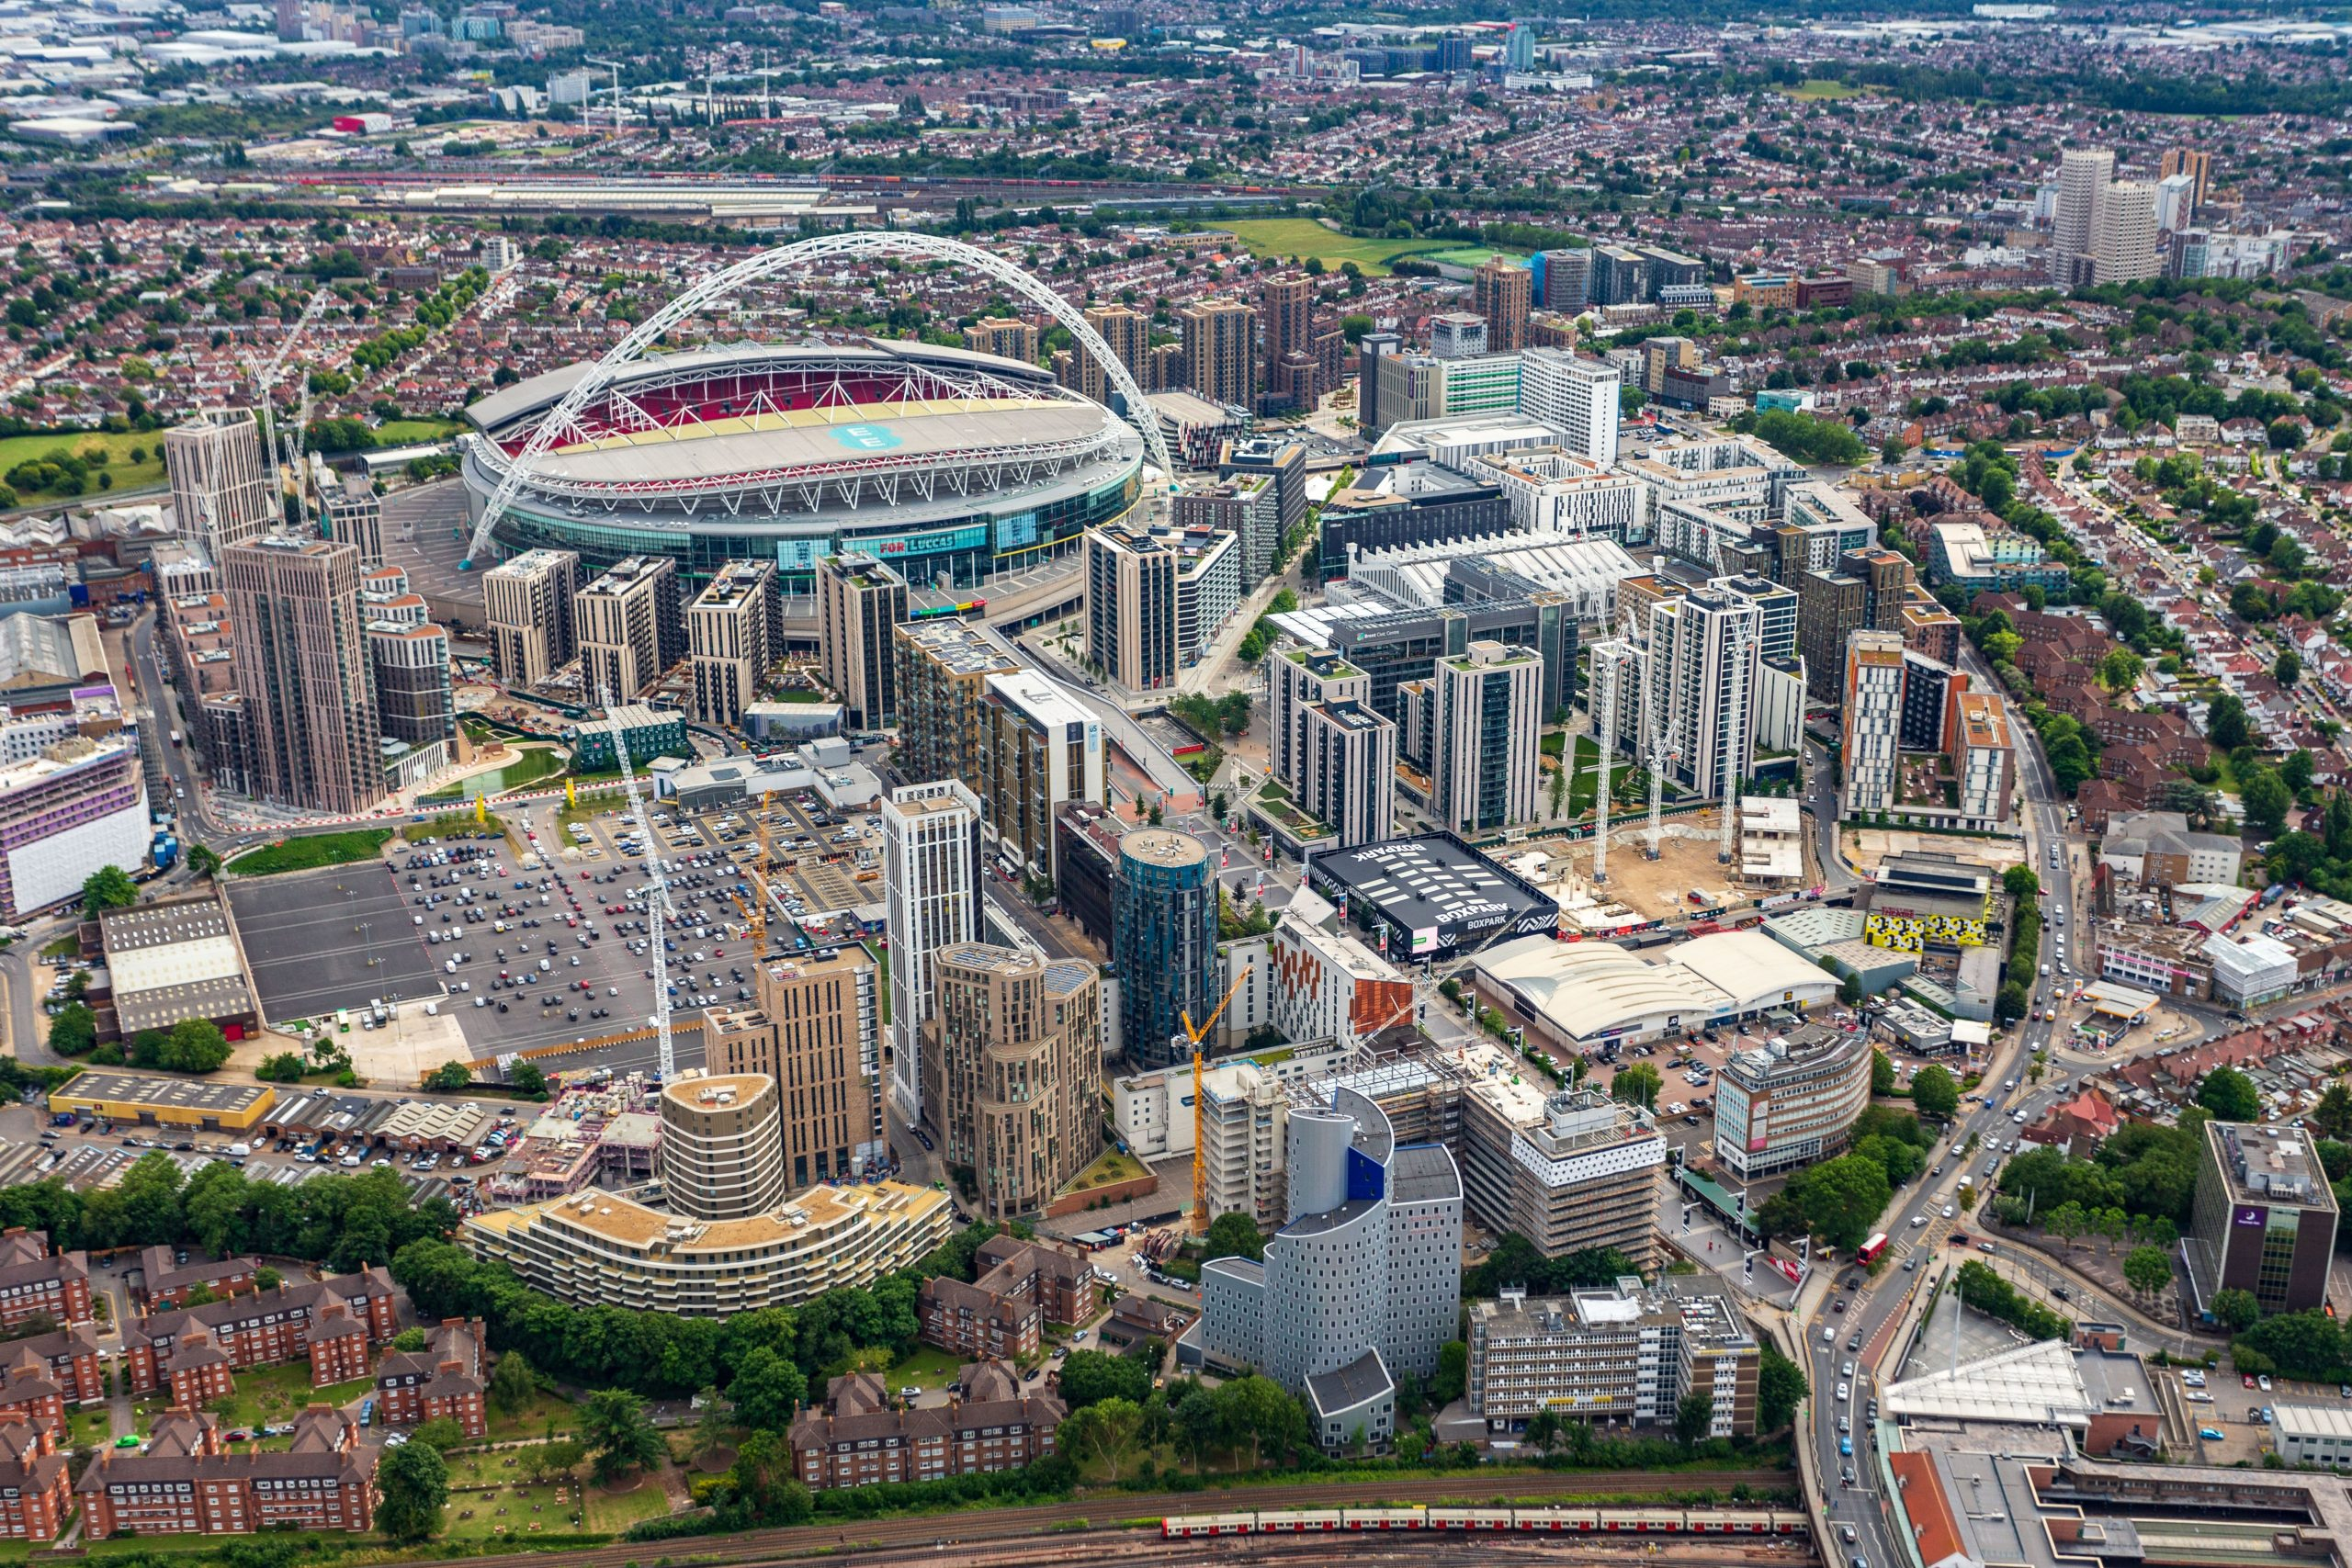 Metropolitan awarded the concession to operate the district heating network for transformational Quintain development at Wembley Park